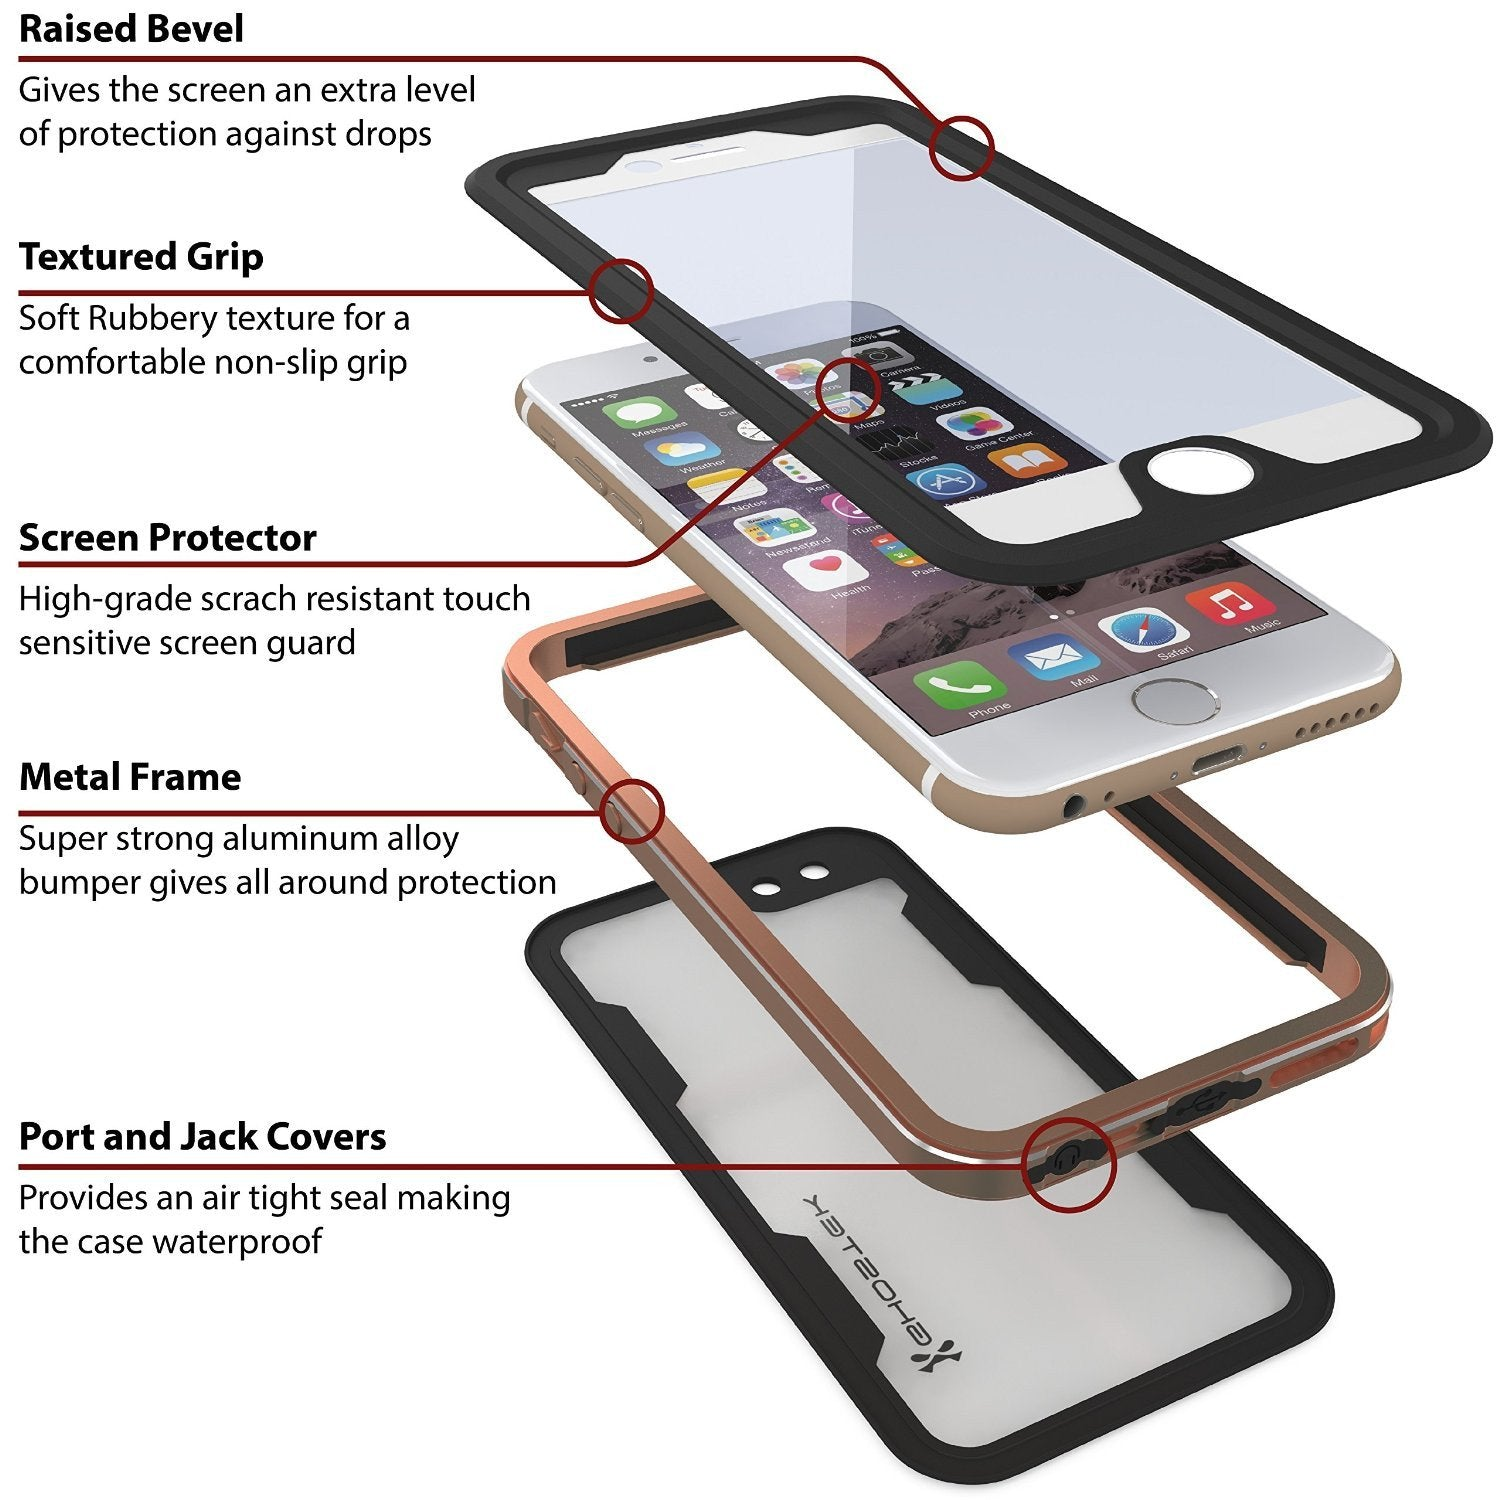 iPhone 6/6S Waterproof Case, Ghostek Atomic 2.0 Gold W/ Attached Screen Protector | Slim Fit - PunkCase NZ